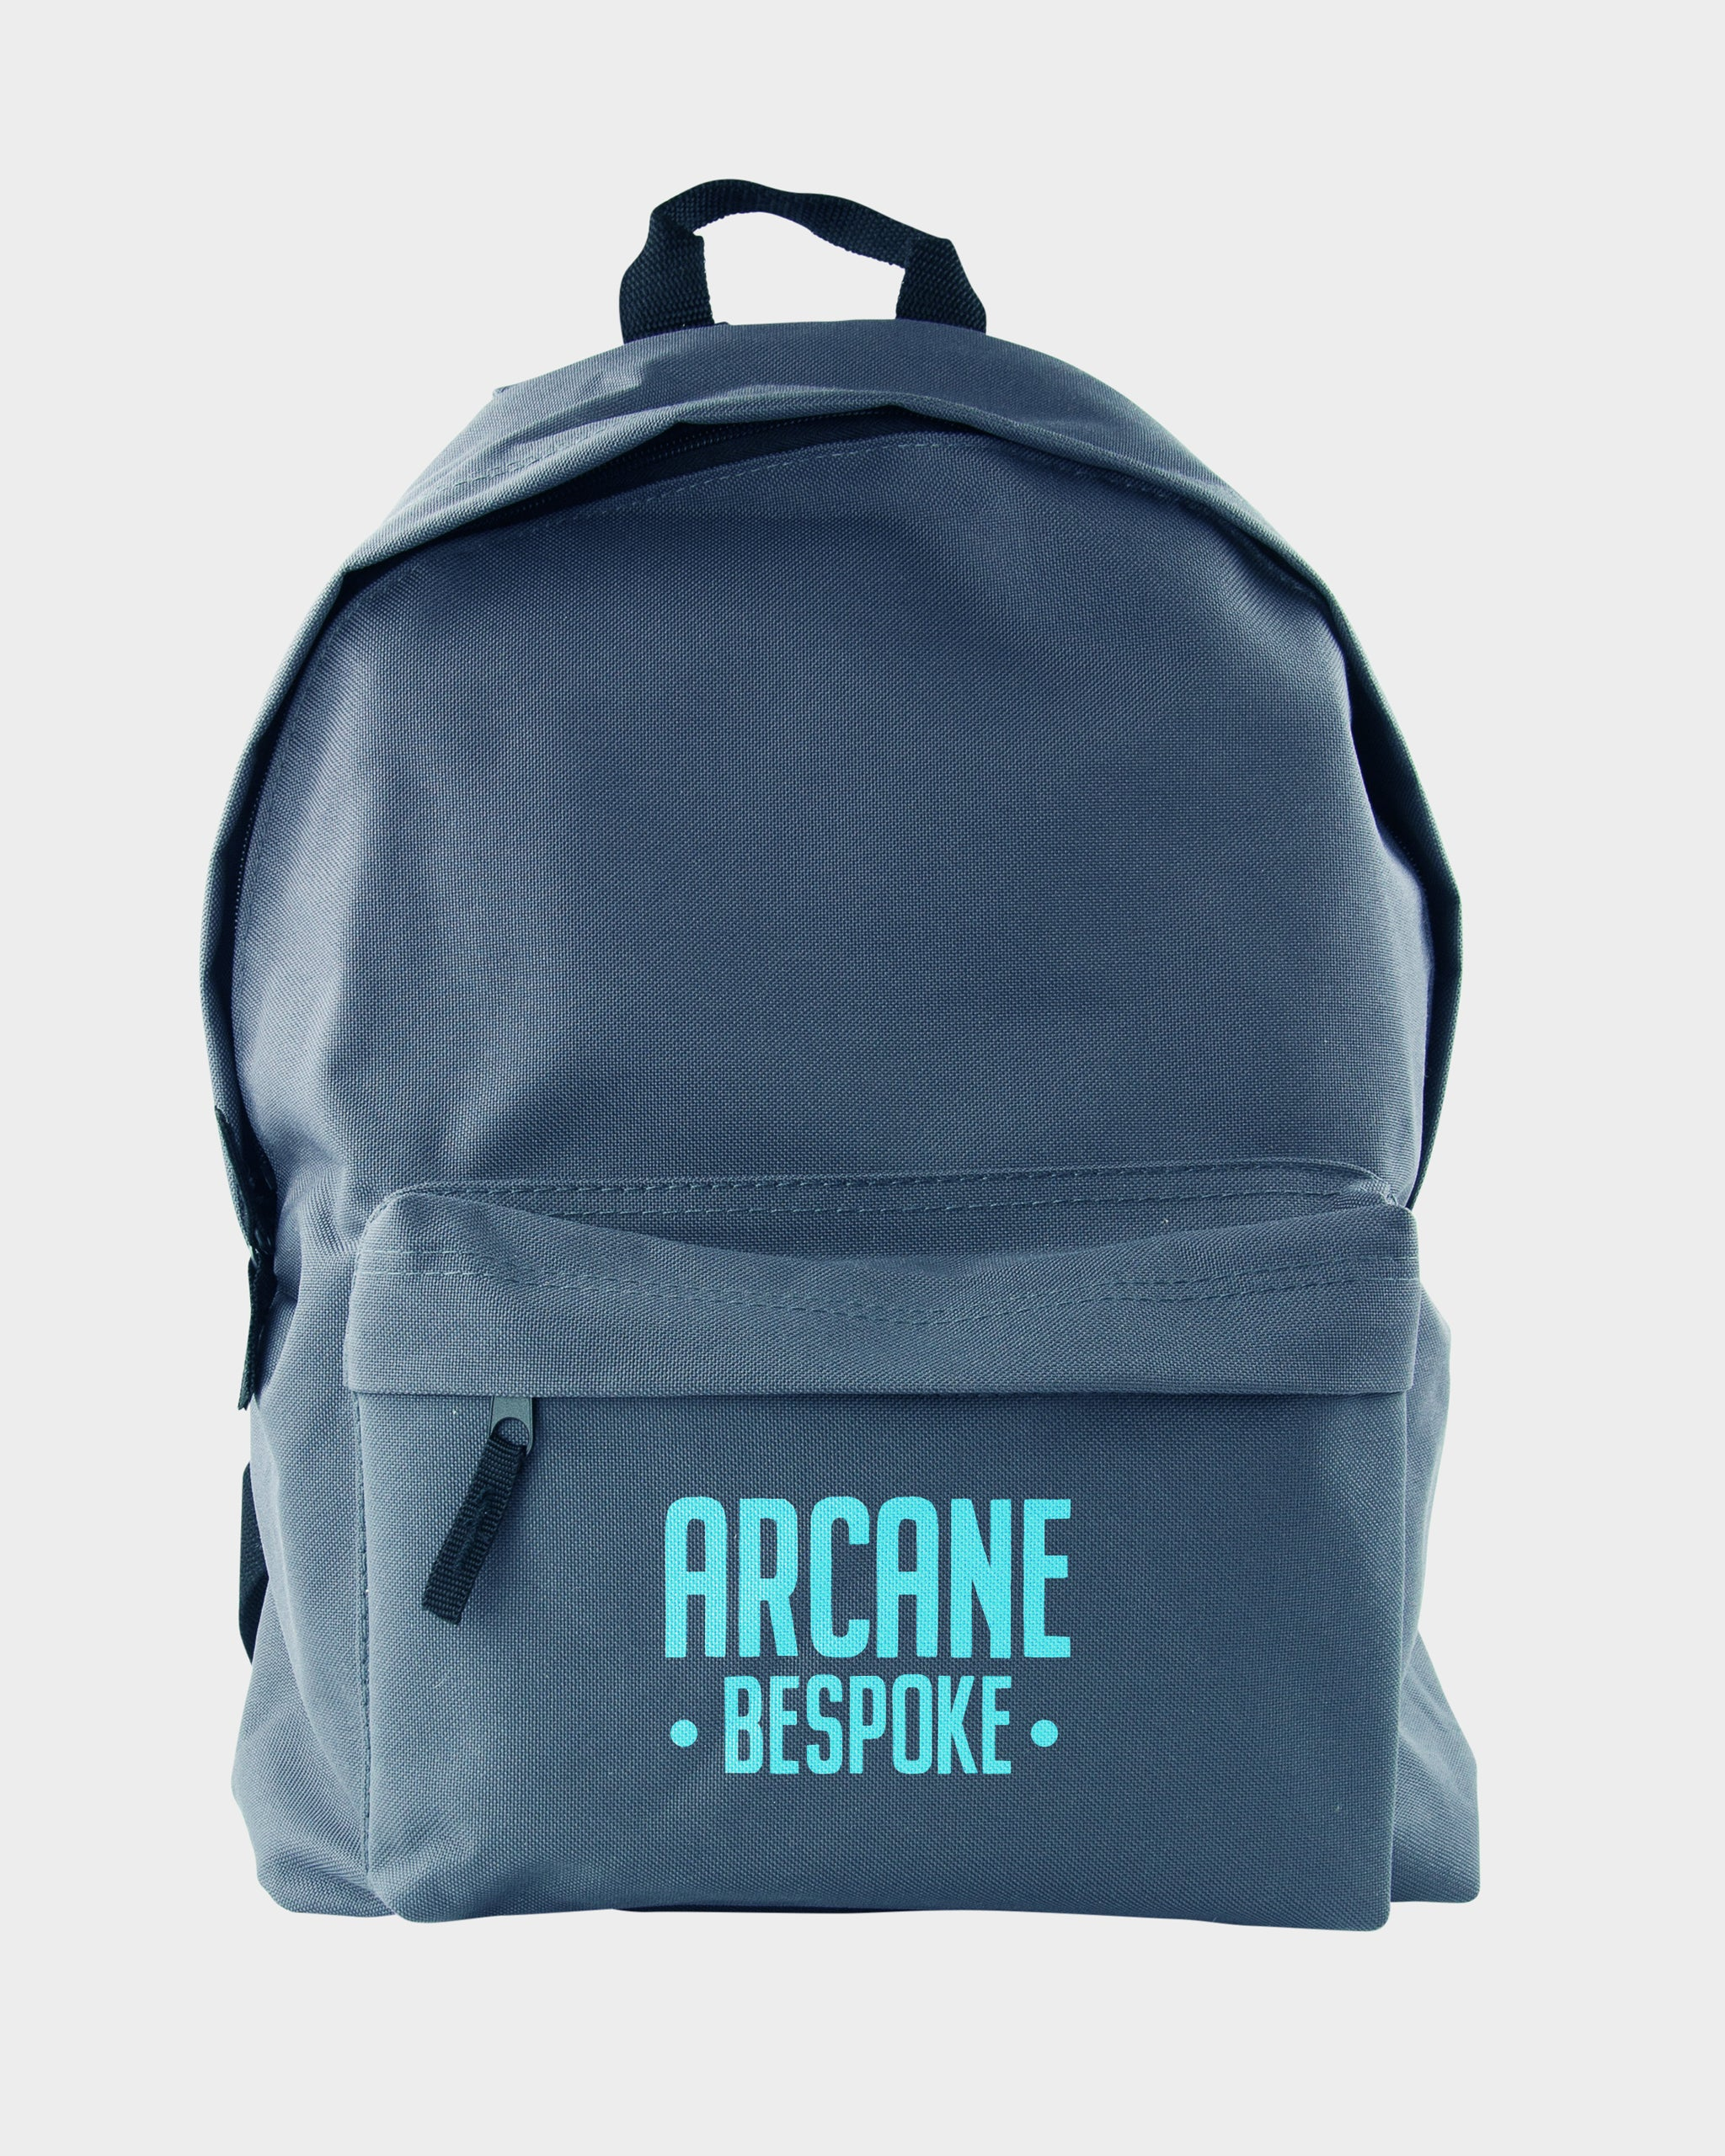 BagBase Fashion Backpack to bespoke screen print with your logo